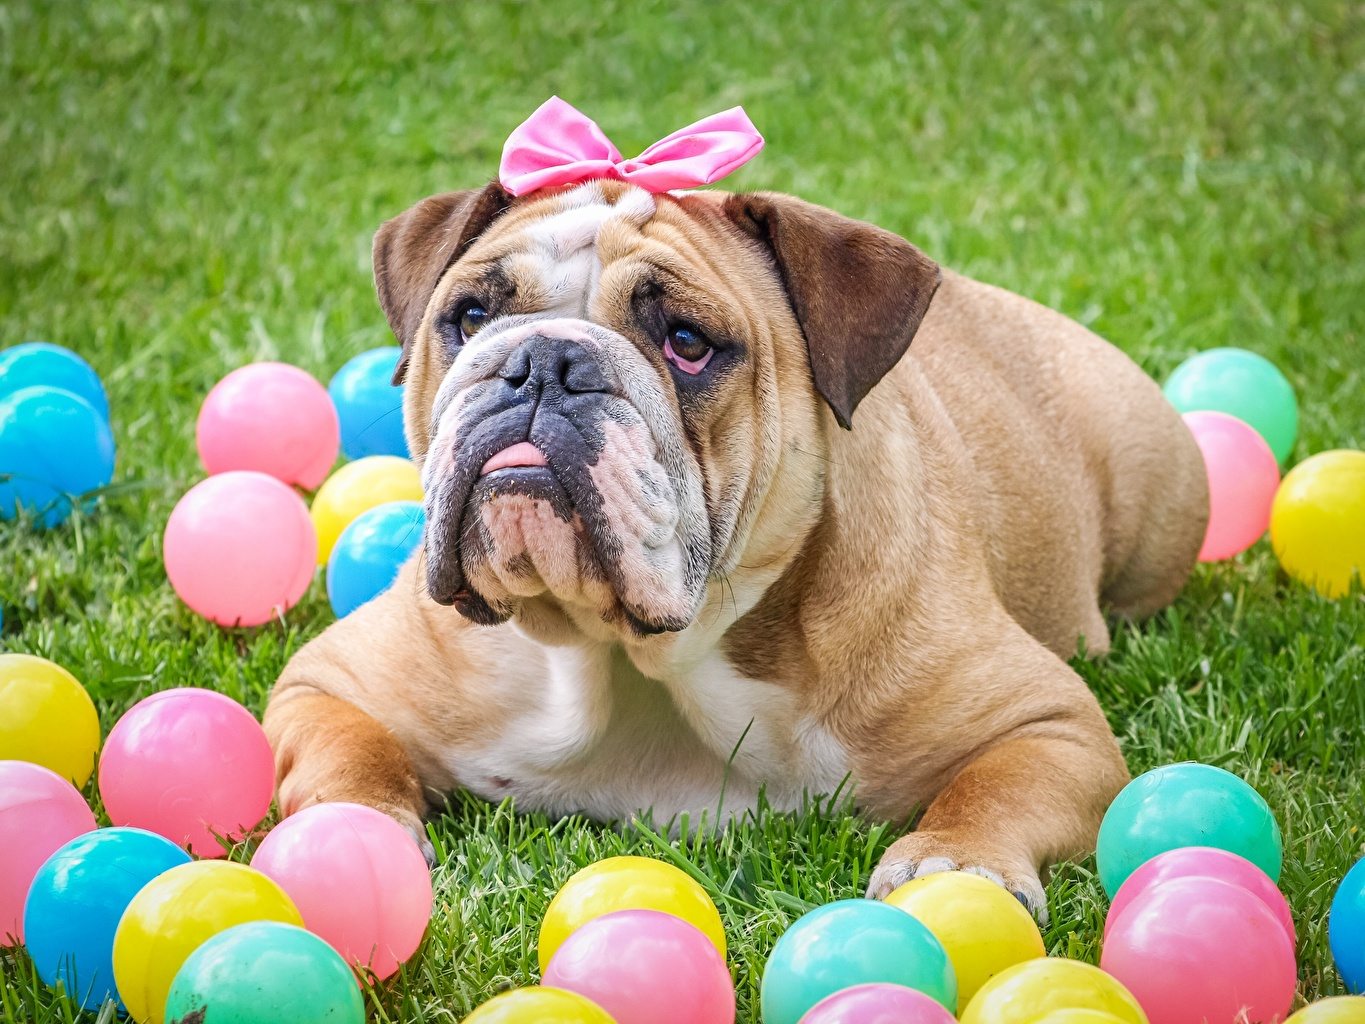 Pictures Bulldog Dogs Lying down Grass Balls bow knot Animals dog laying esting Bowknot animal